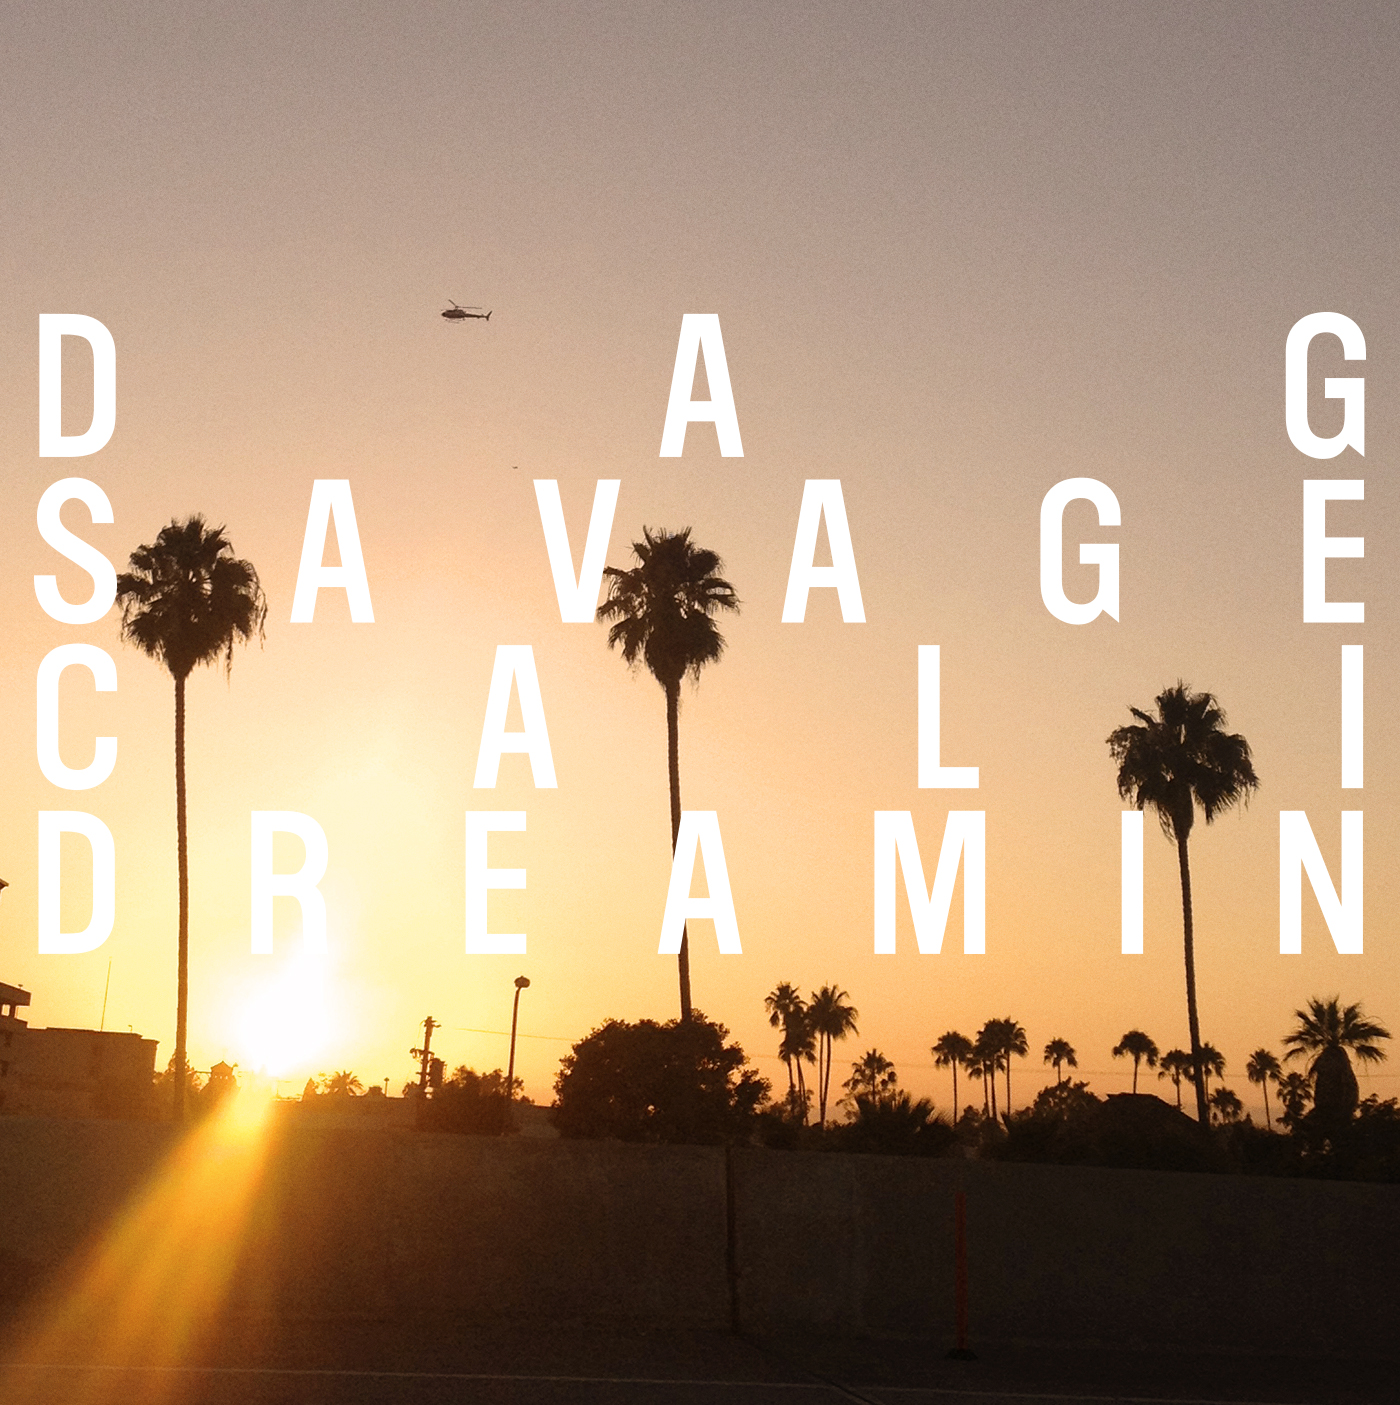 Free MP3: Dag Savage (Johaz & Exile) – Cali Dreamin' (ft. Fashawn & Co$$)